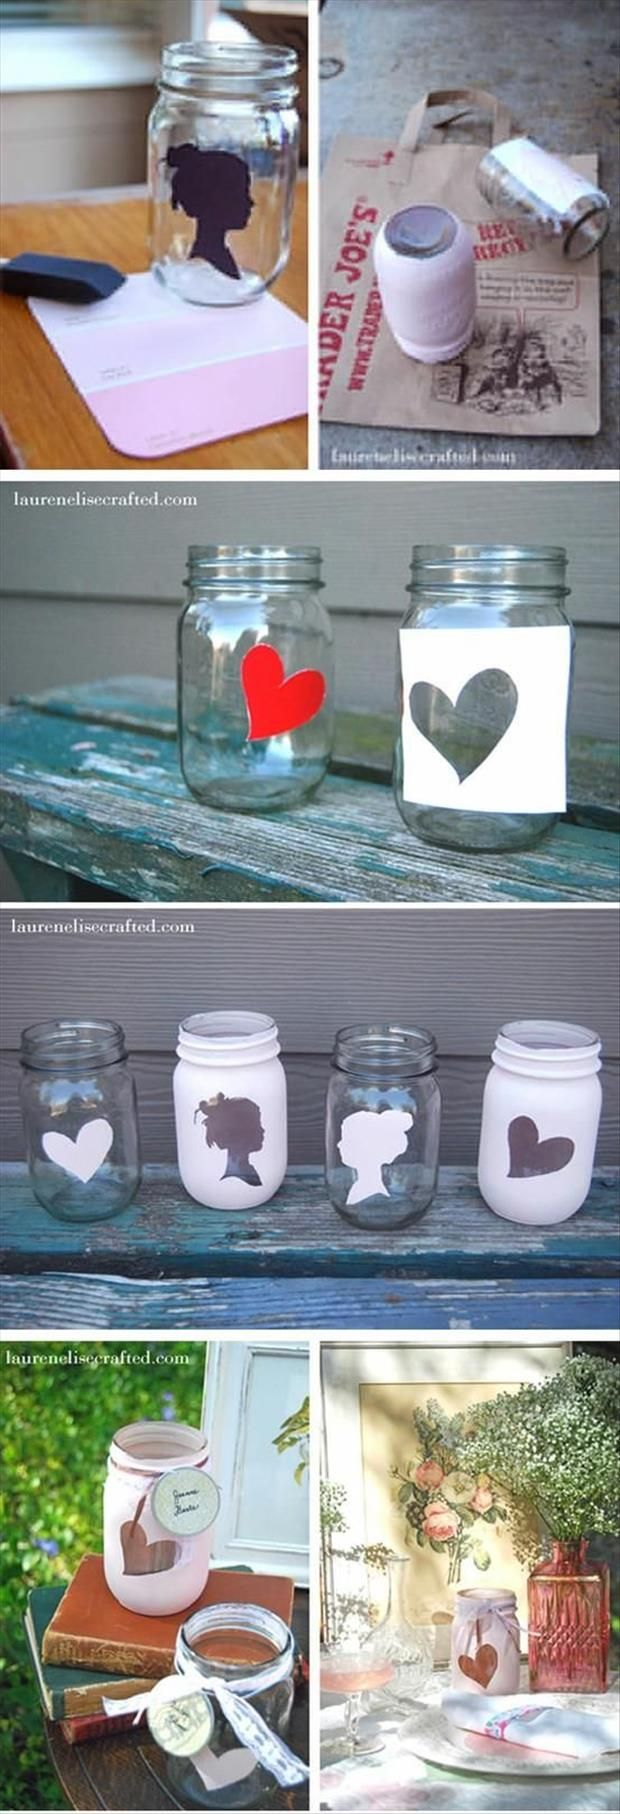 Fun Do It Yourself Craft Ideas - 24 Pics